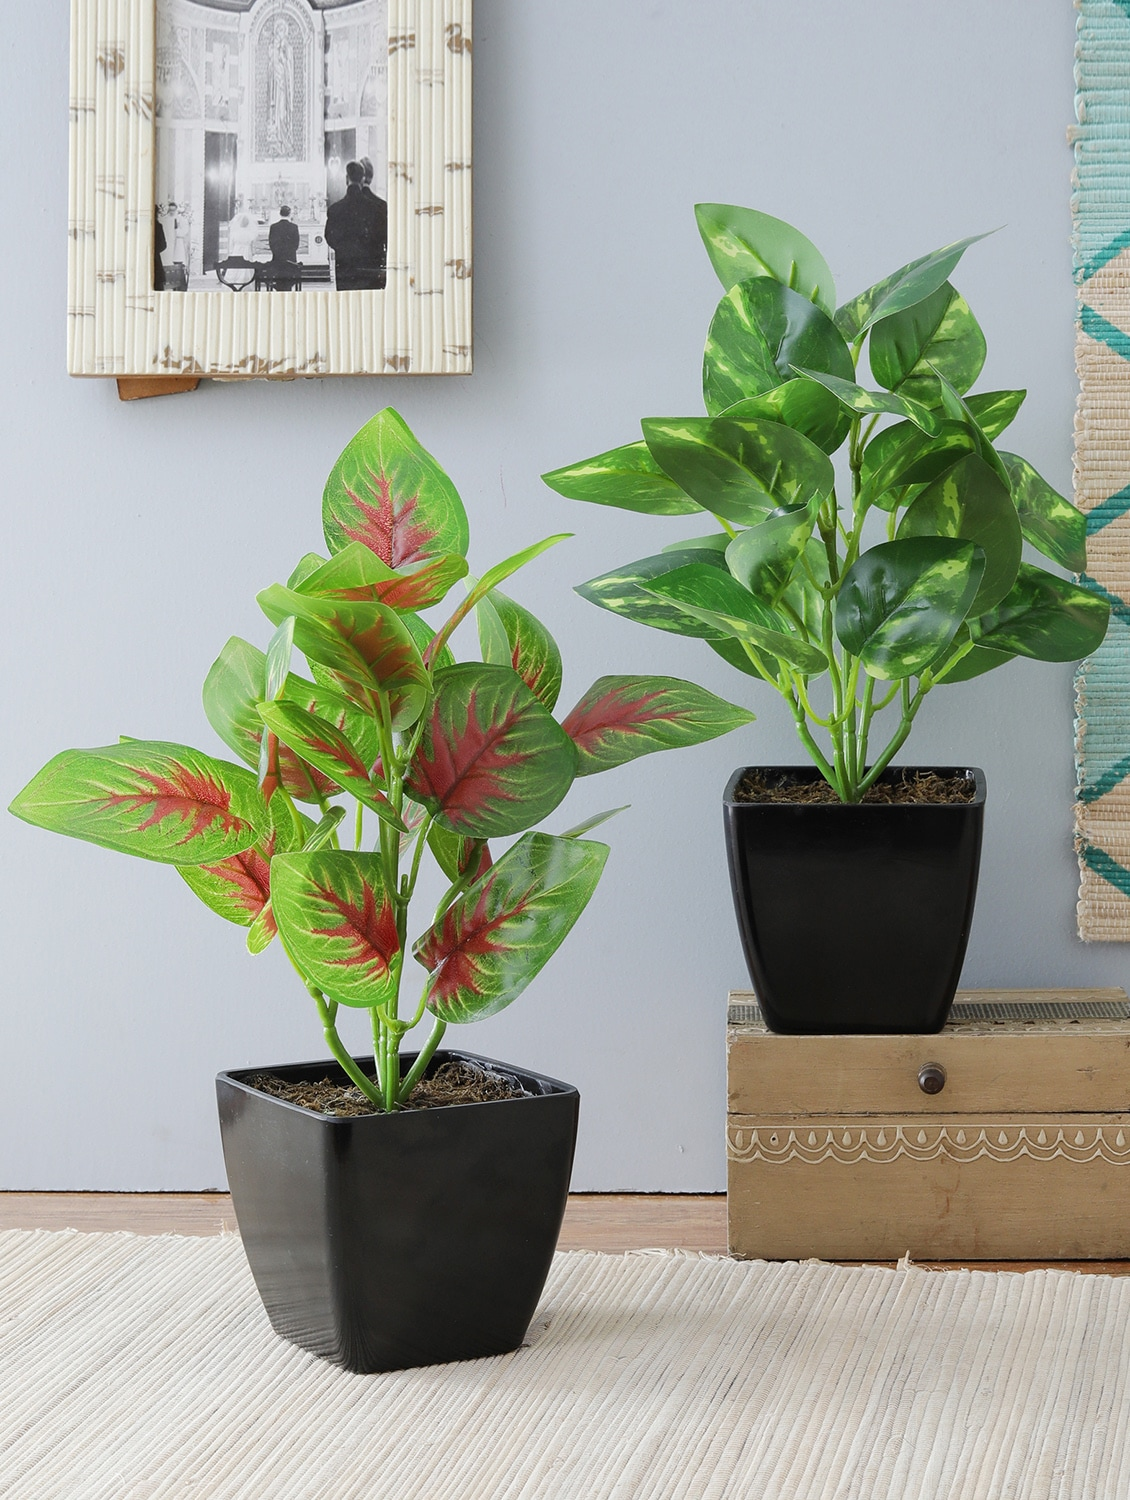 Buy Artificial Plants With Pot Combo Of 2 For Home Dcor And Living Room